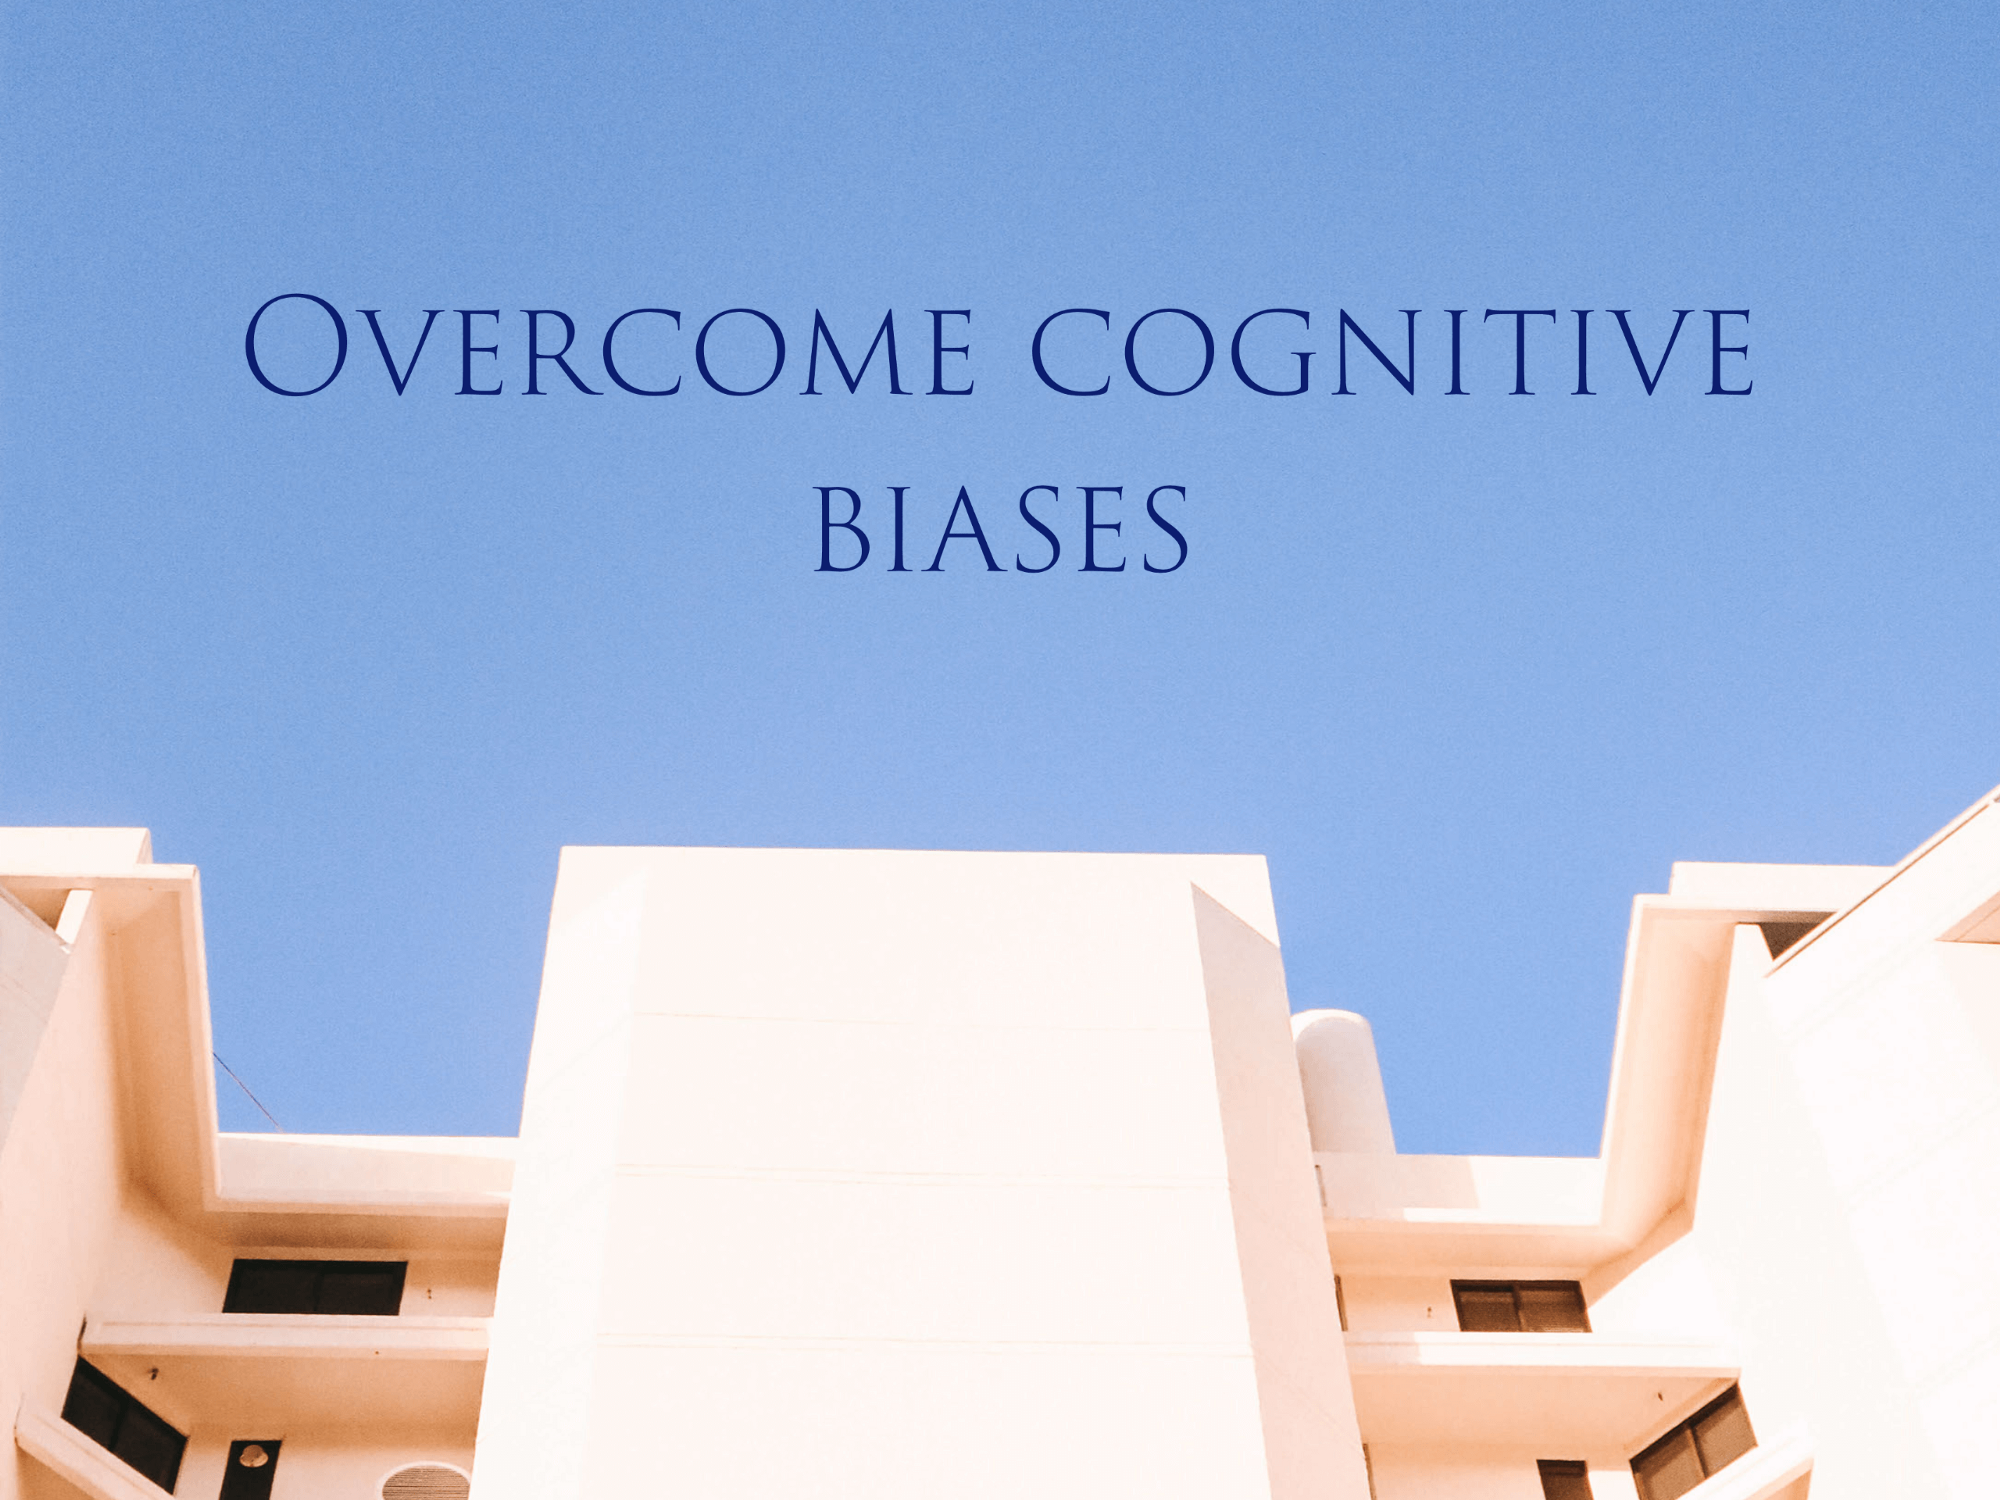 Overcome cognitive biases